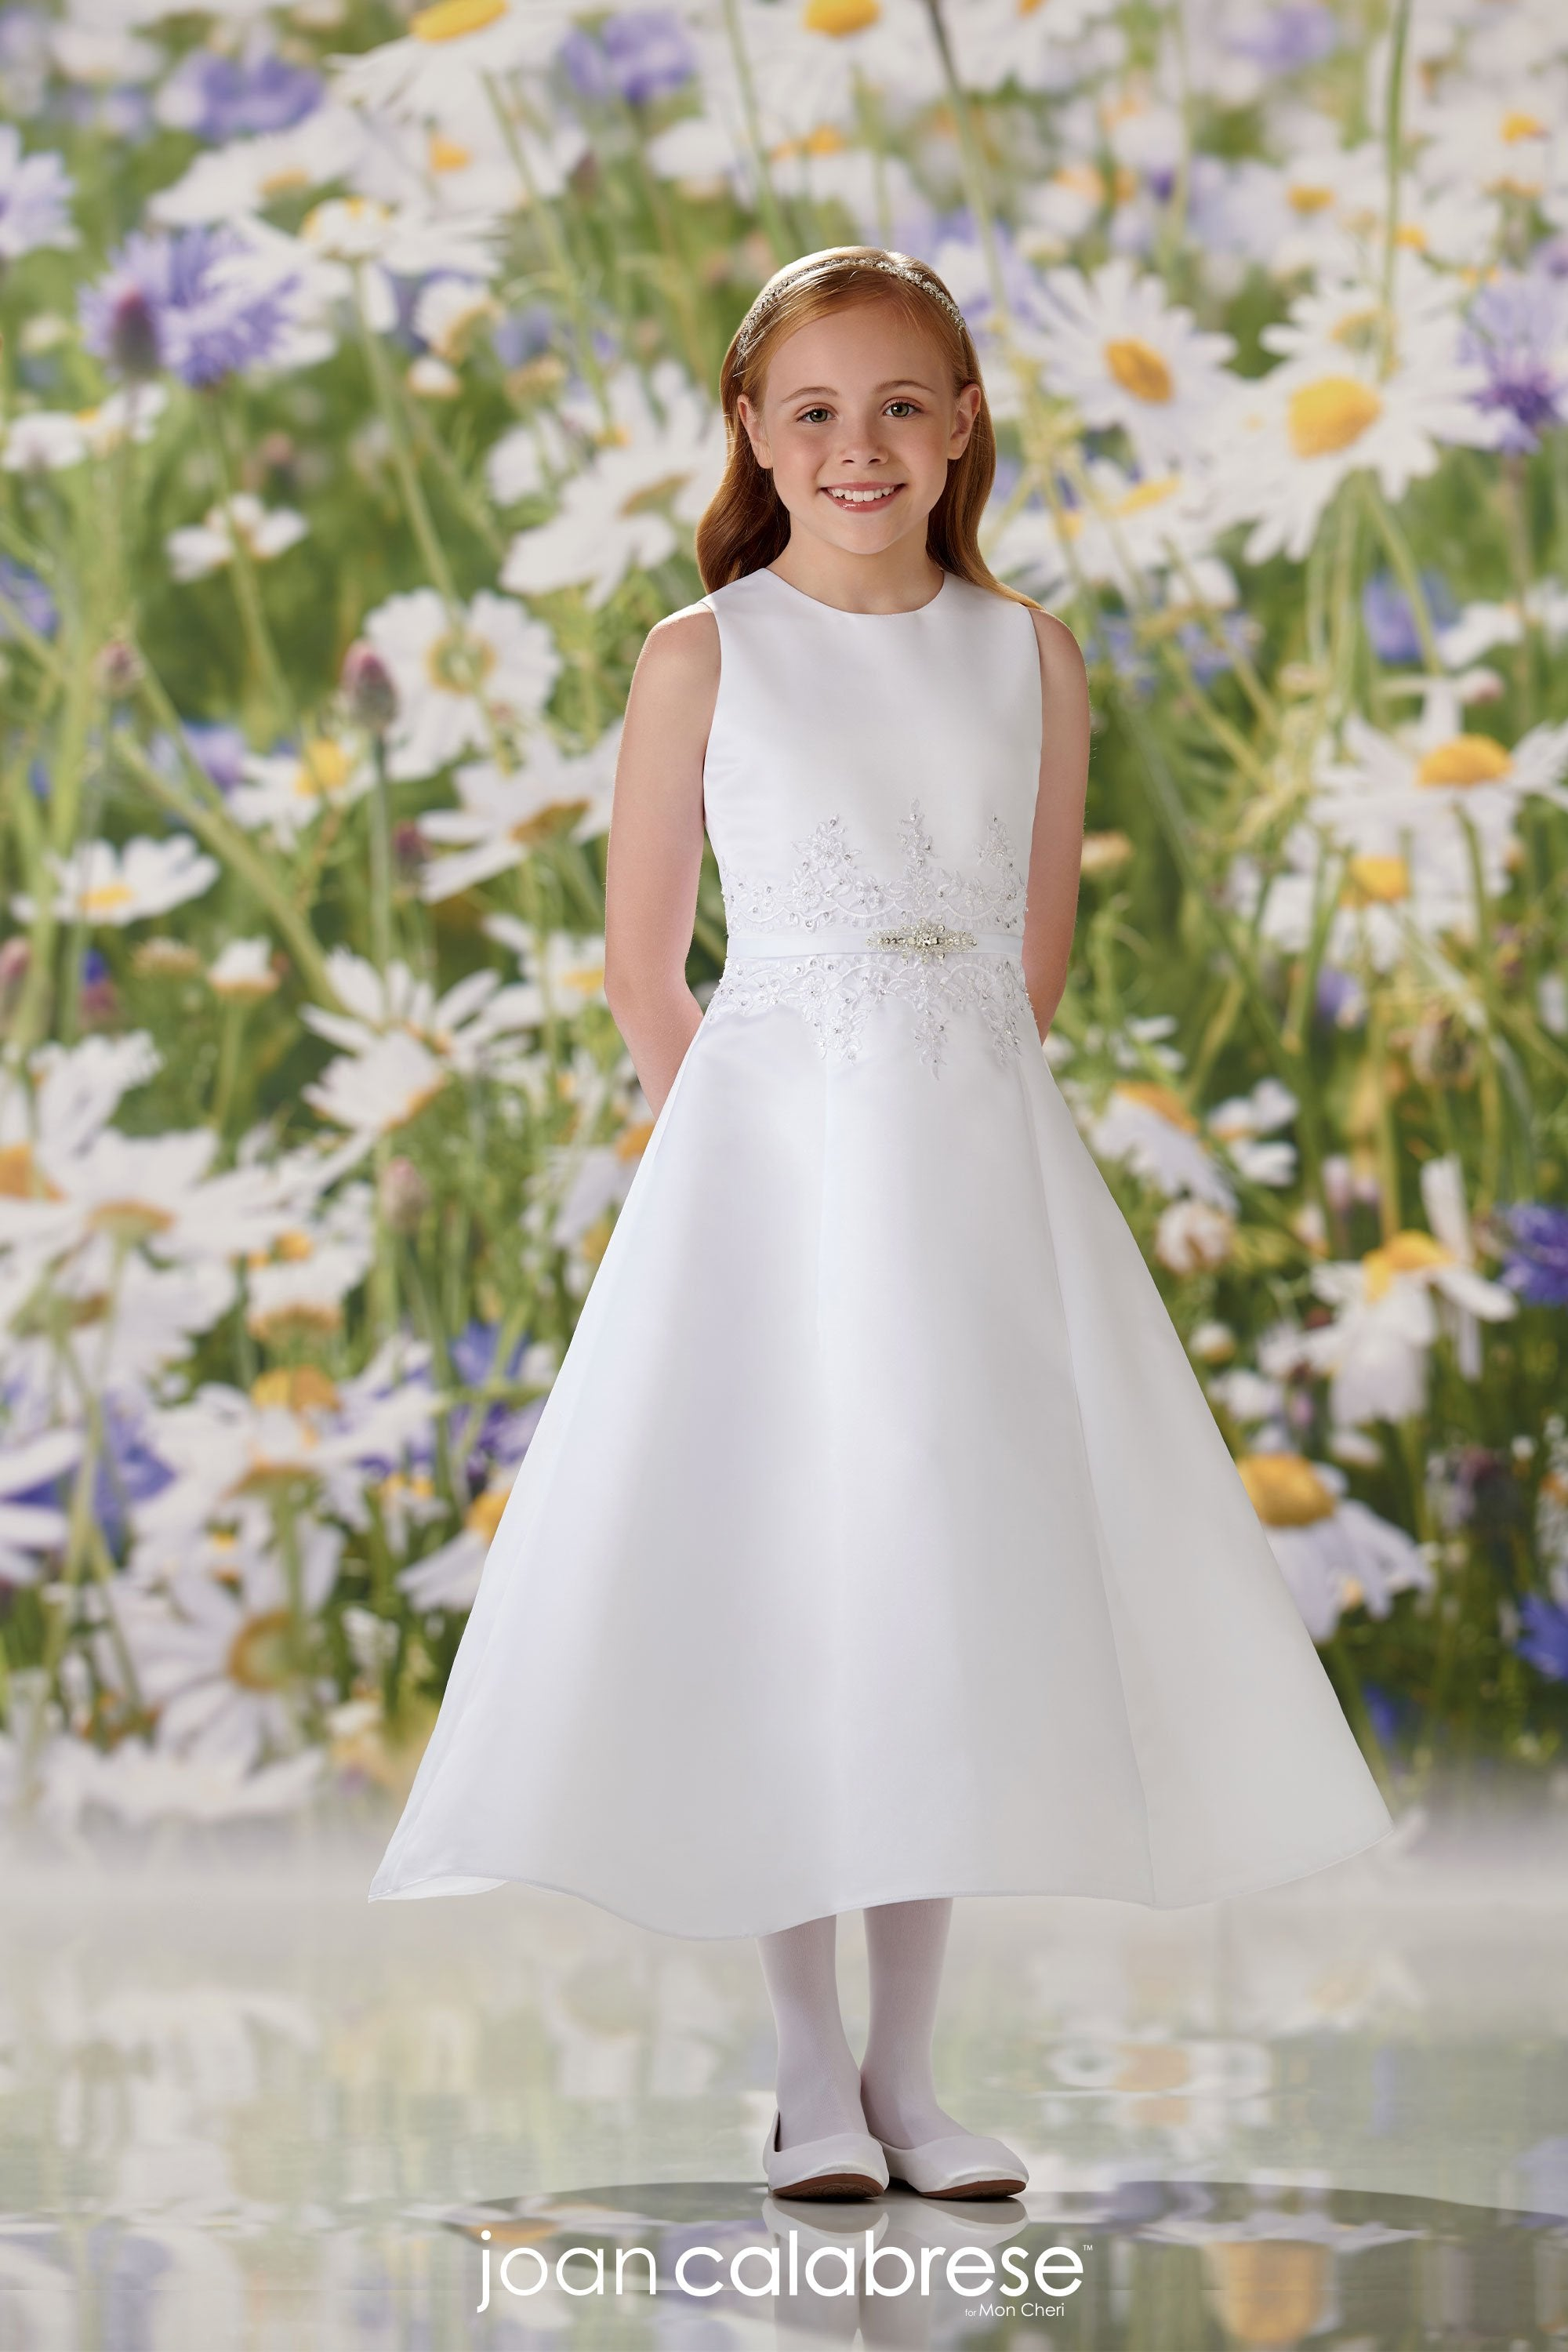 Joan Calabrese For Mon Cheri Communion Dress 120339X - Nenes Lullaby Boutique Inc